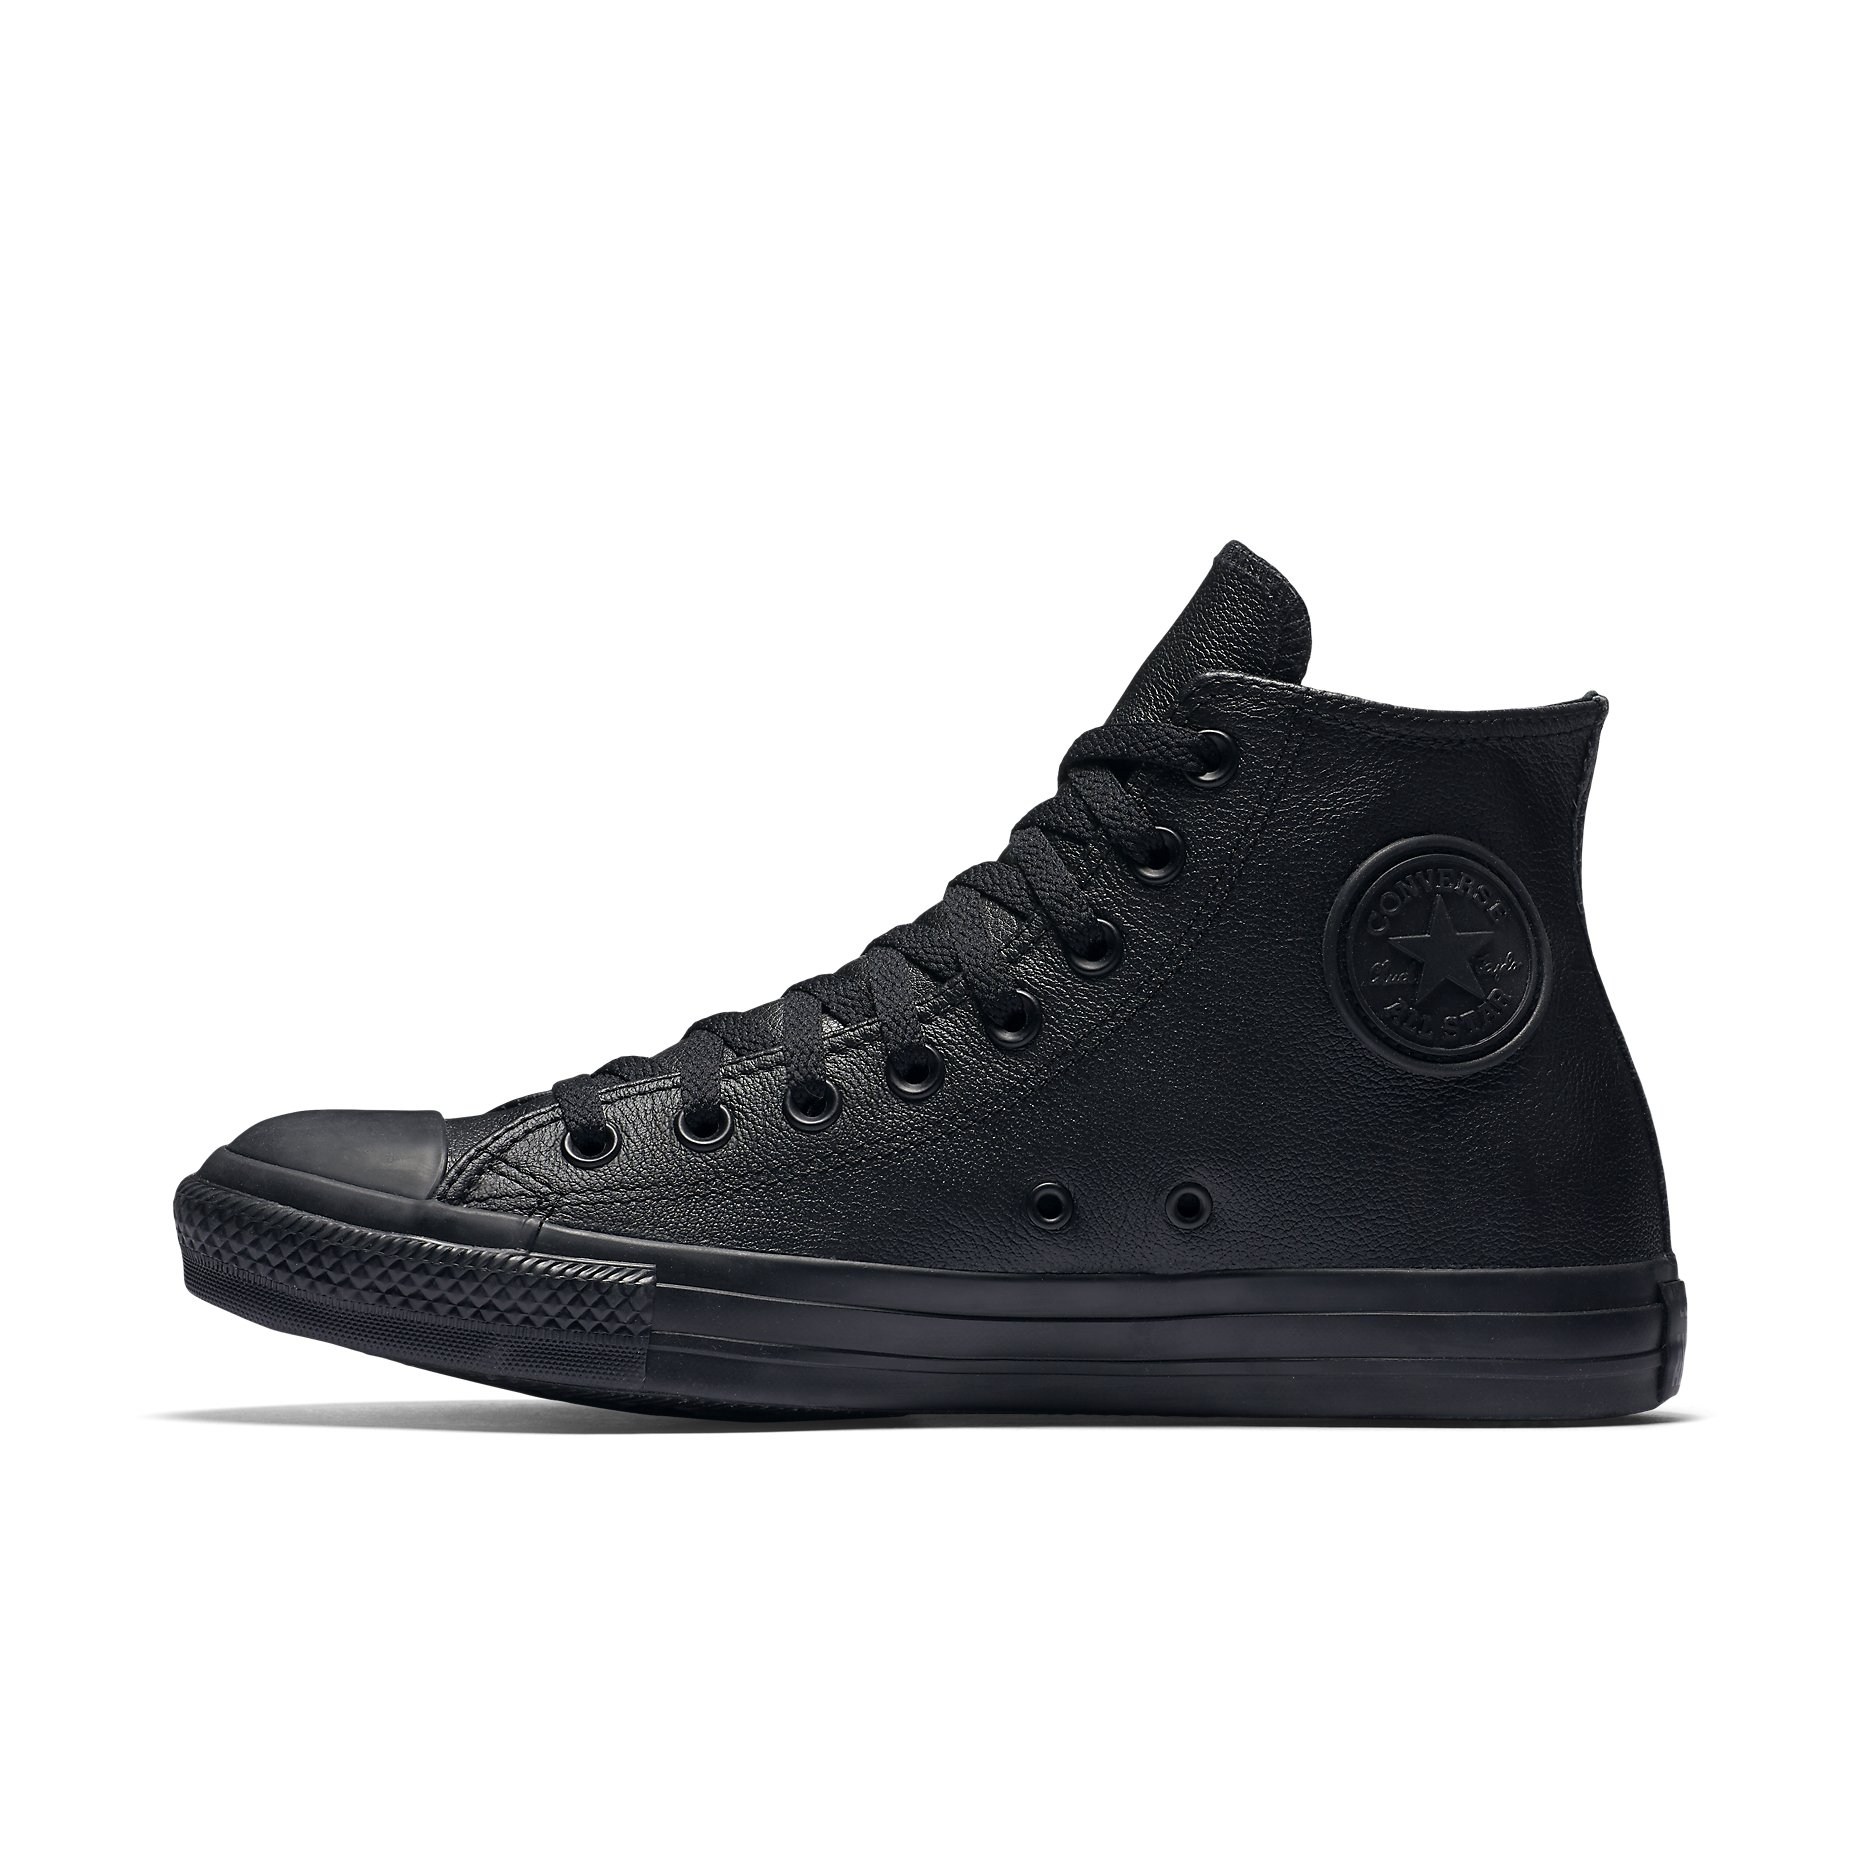 Details about New Converse Chuck Taylor All Star Leather High Top Women Shoes Black White NIB